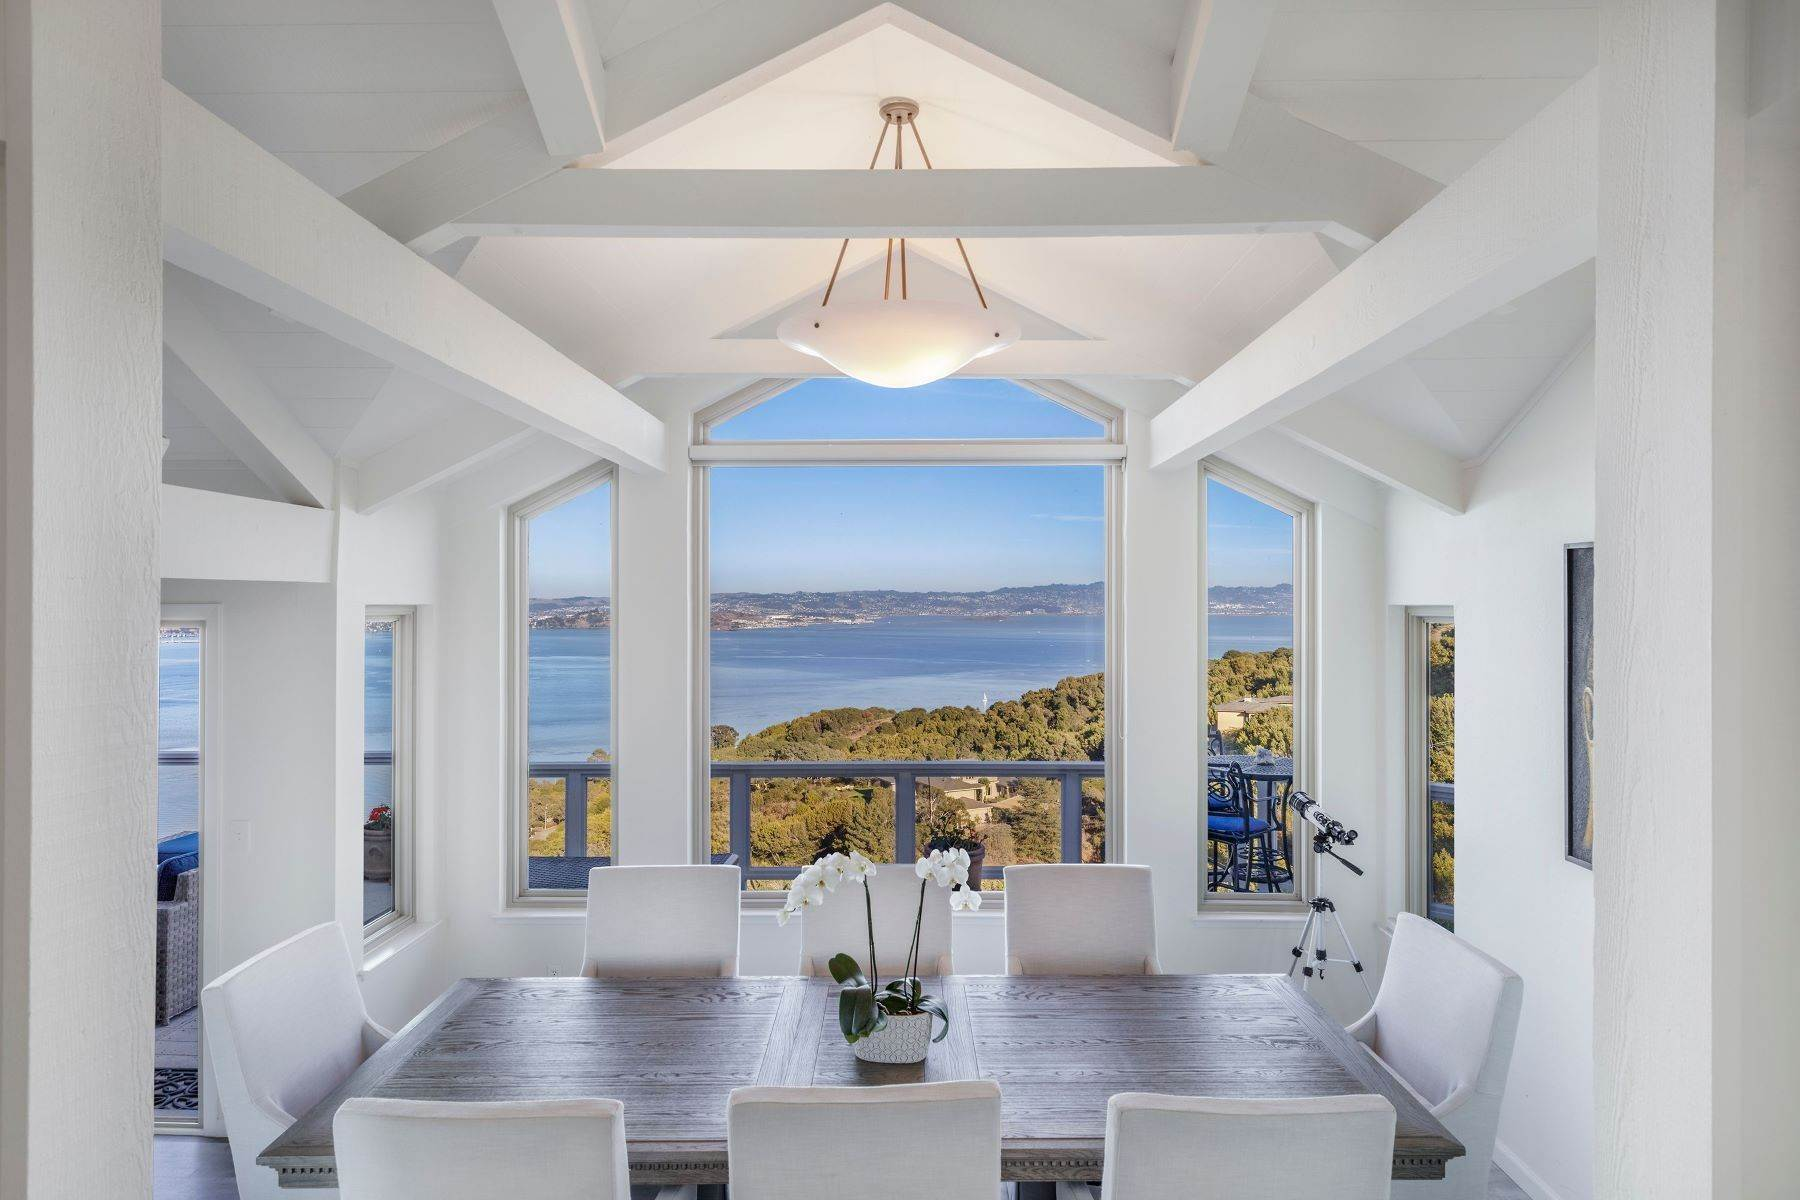 Property for Sale at Soaring Vistas in Tiburon 104 Sugarloaf Drive Tiburon, California 94920 United States